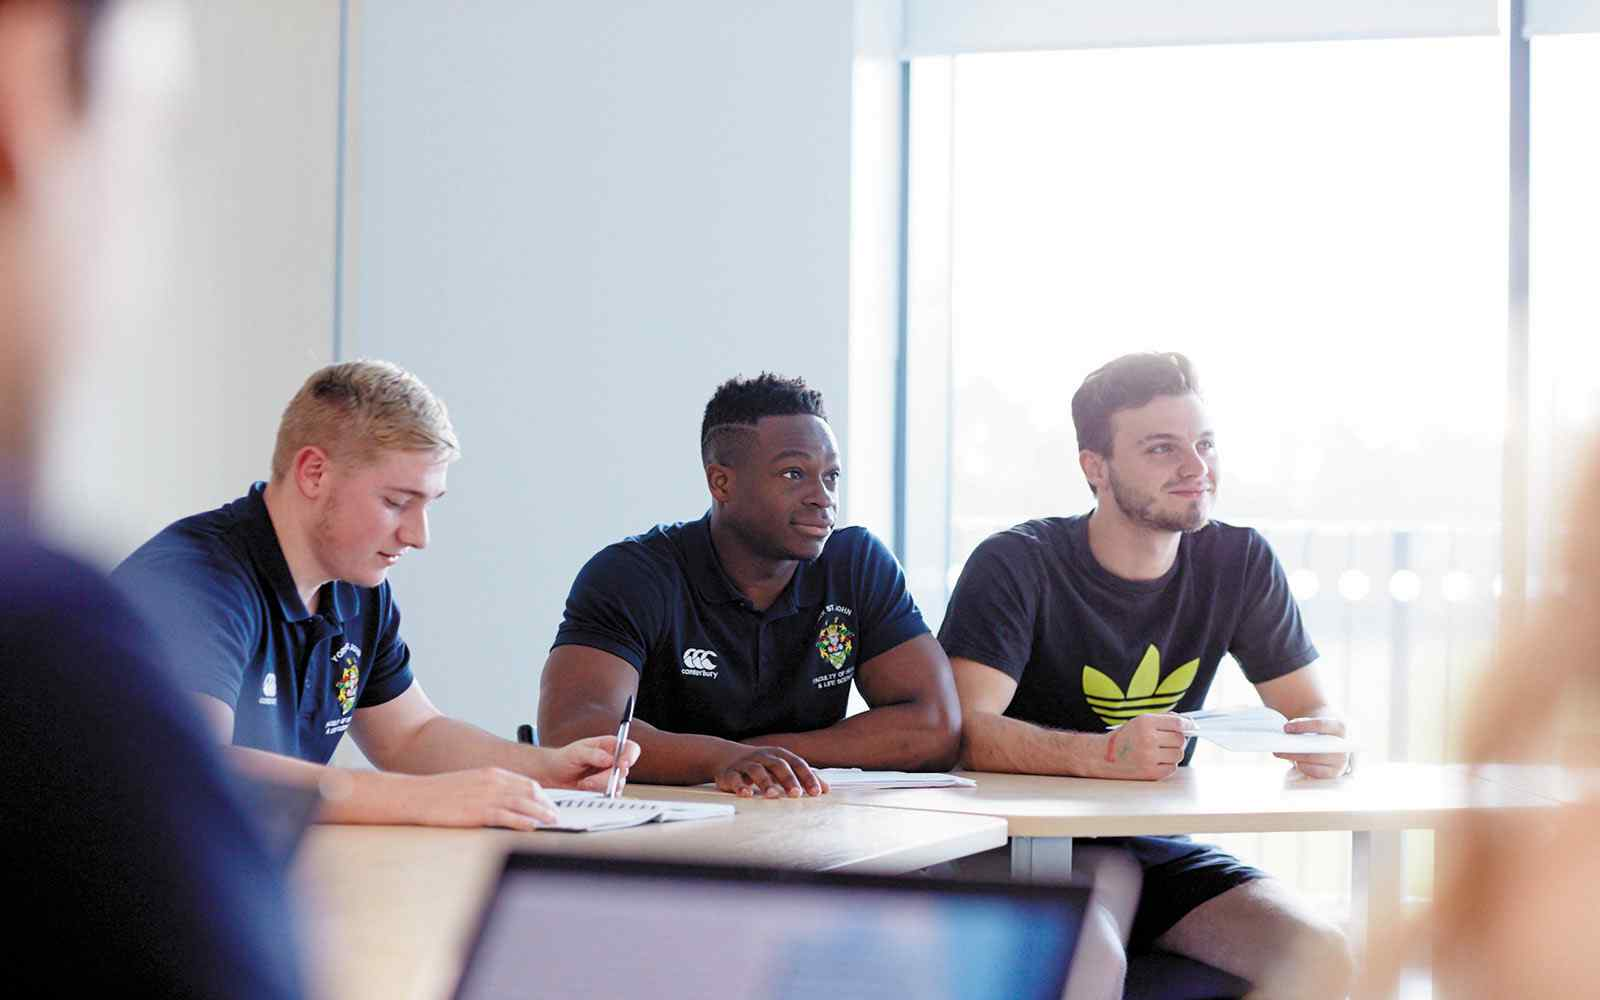 Three male students sitting at a desk paper is on the table. Two students are looking ahead, the other is looking downwards